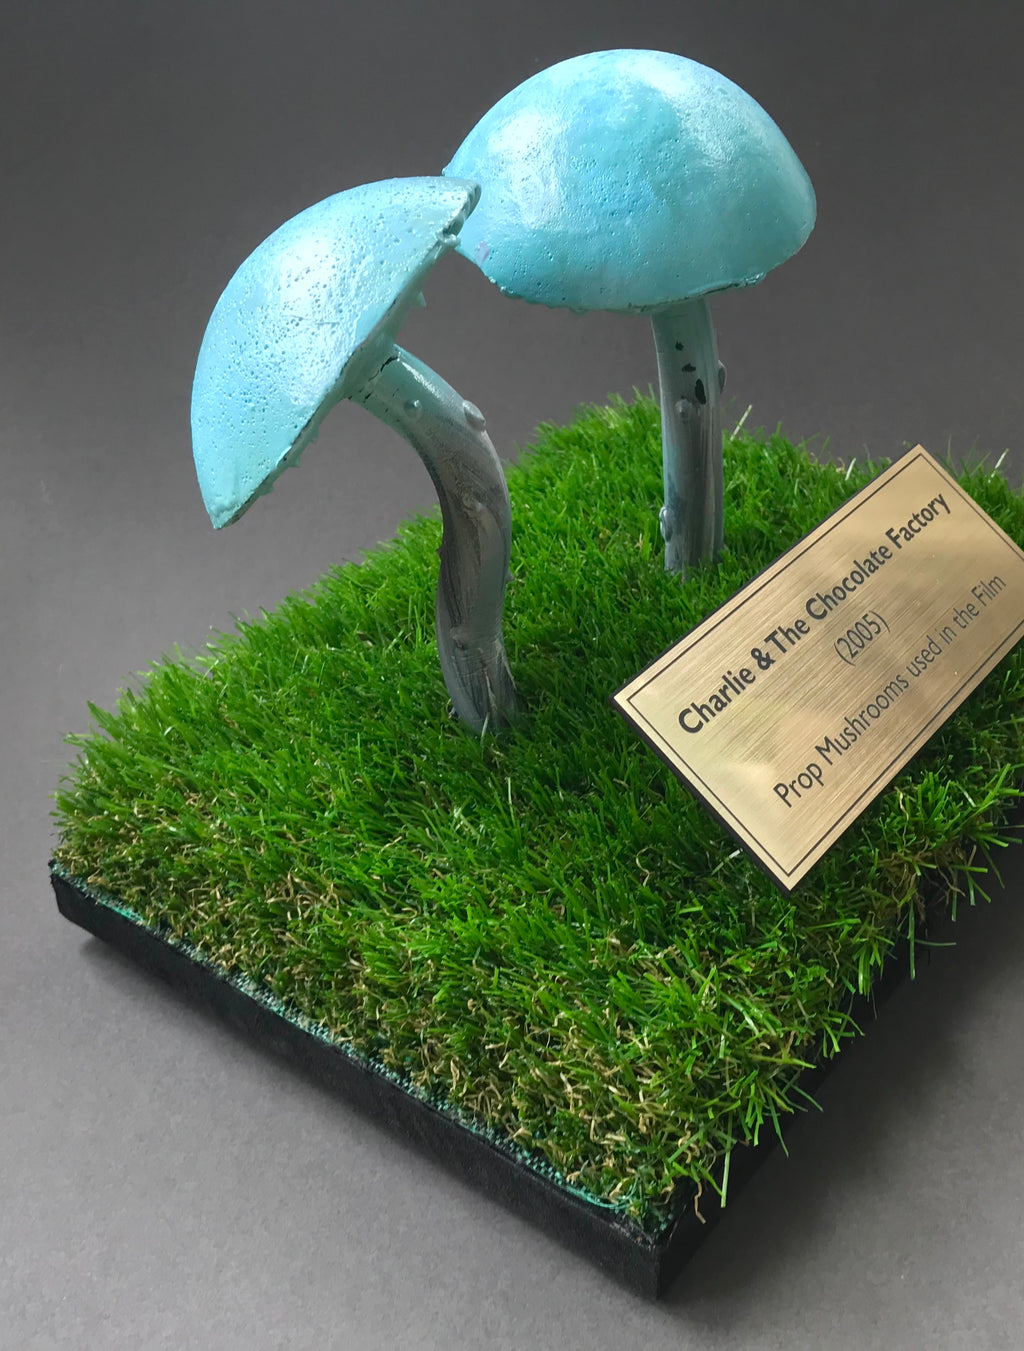 Charlie & The Chocolate Factory (2005) - Two Prop Mushrooms on a Custom Display (SOLD)